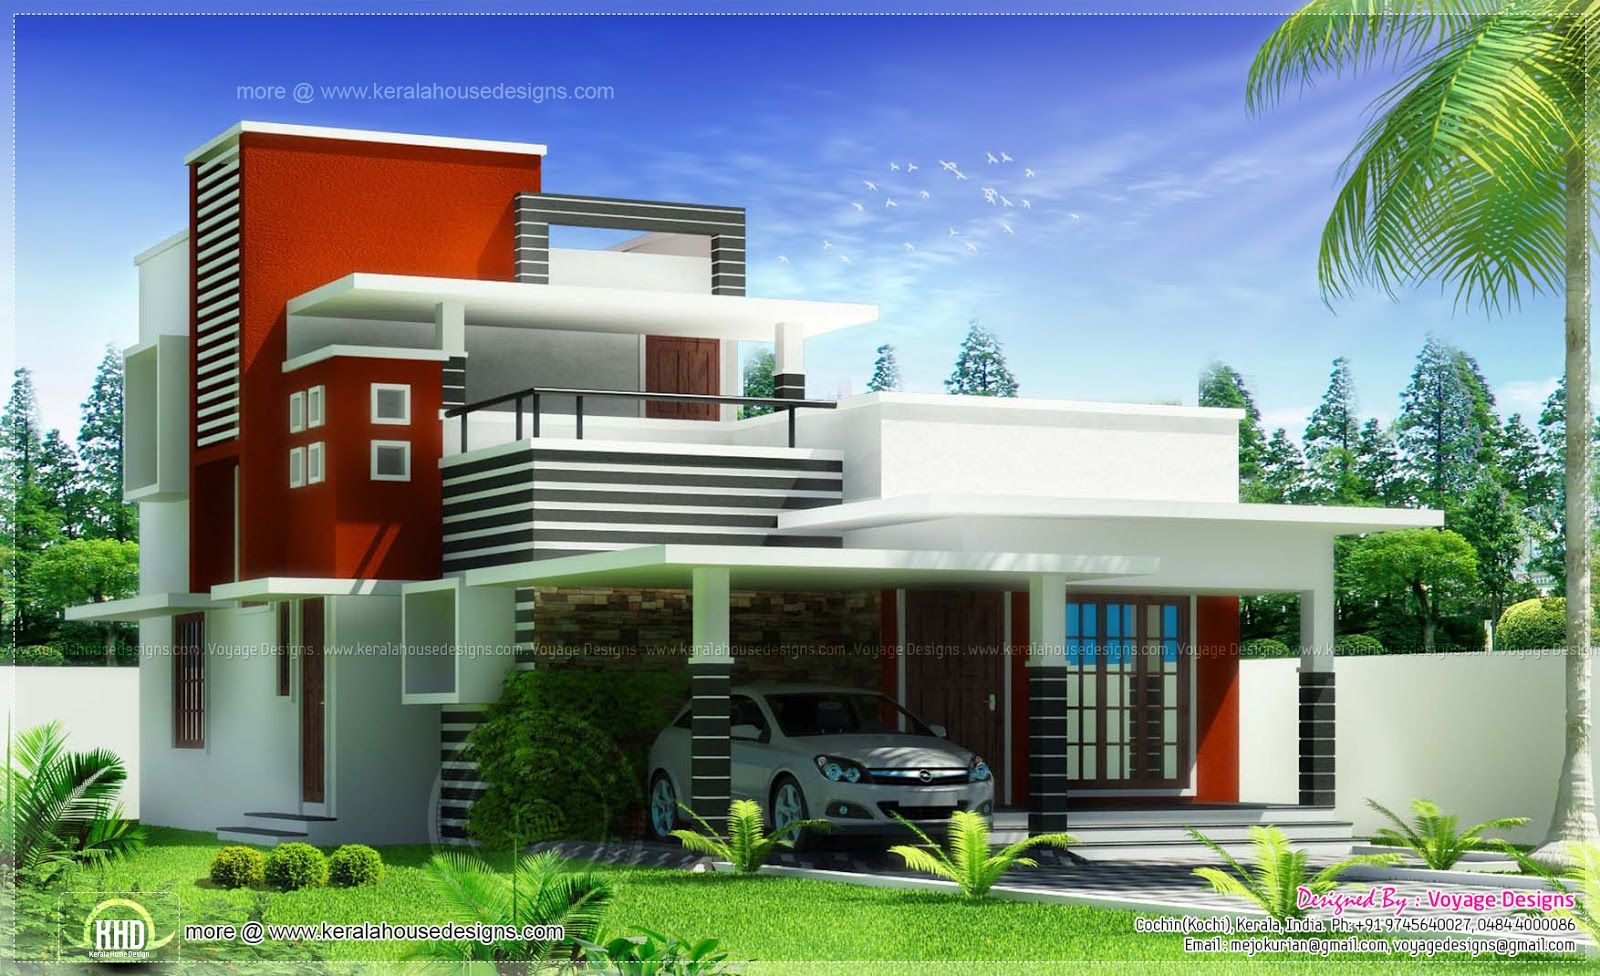 Kerala house designs architecture pinterest kerala for Modern looking houses